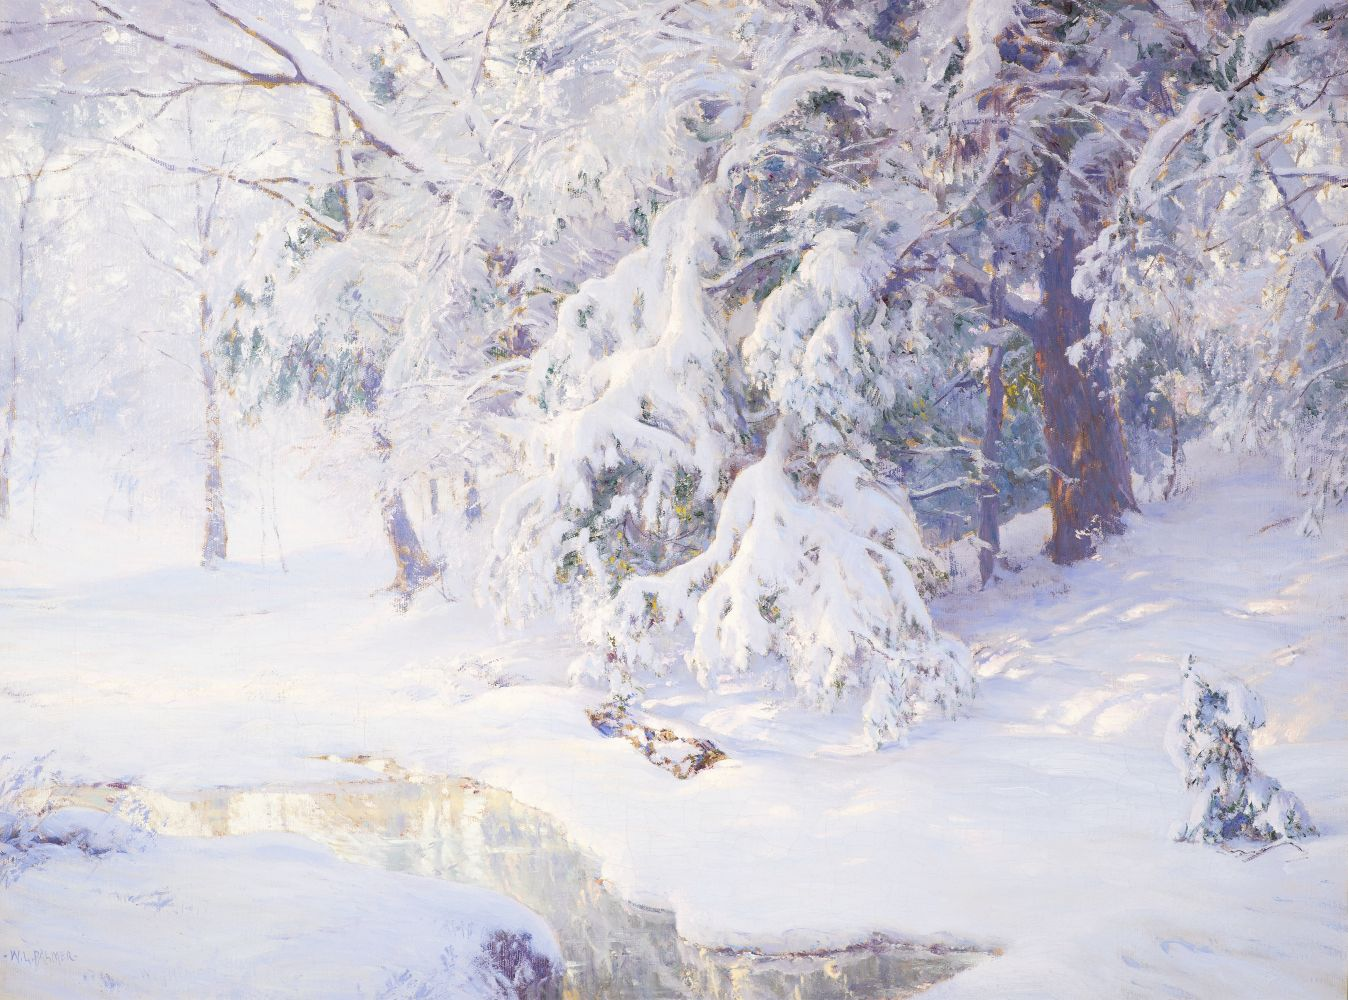 Walter Launt Palmer (1854-1932)  Winter Sunrise, 1913. Oil on canvas, 24 x 32 in. Signed lower left: W. L. Palmer